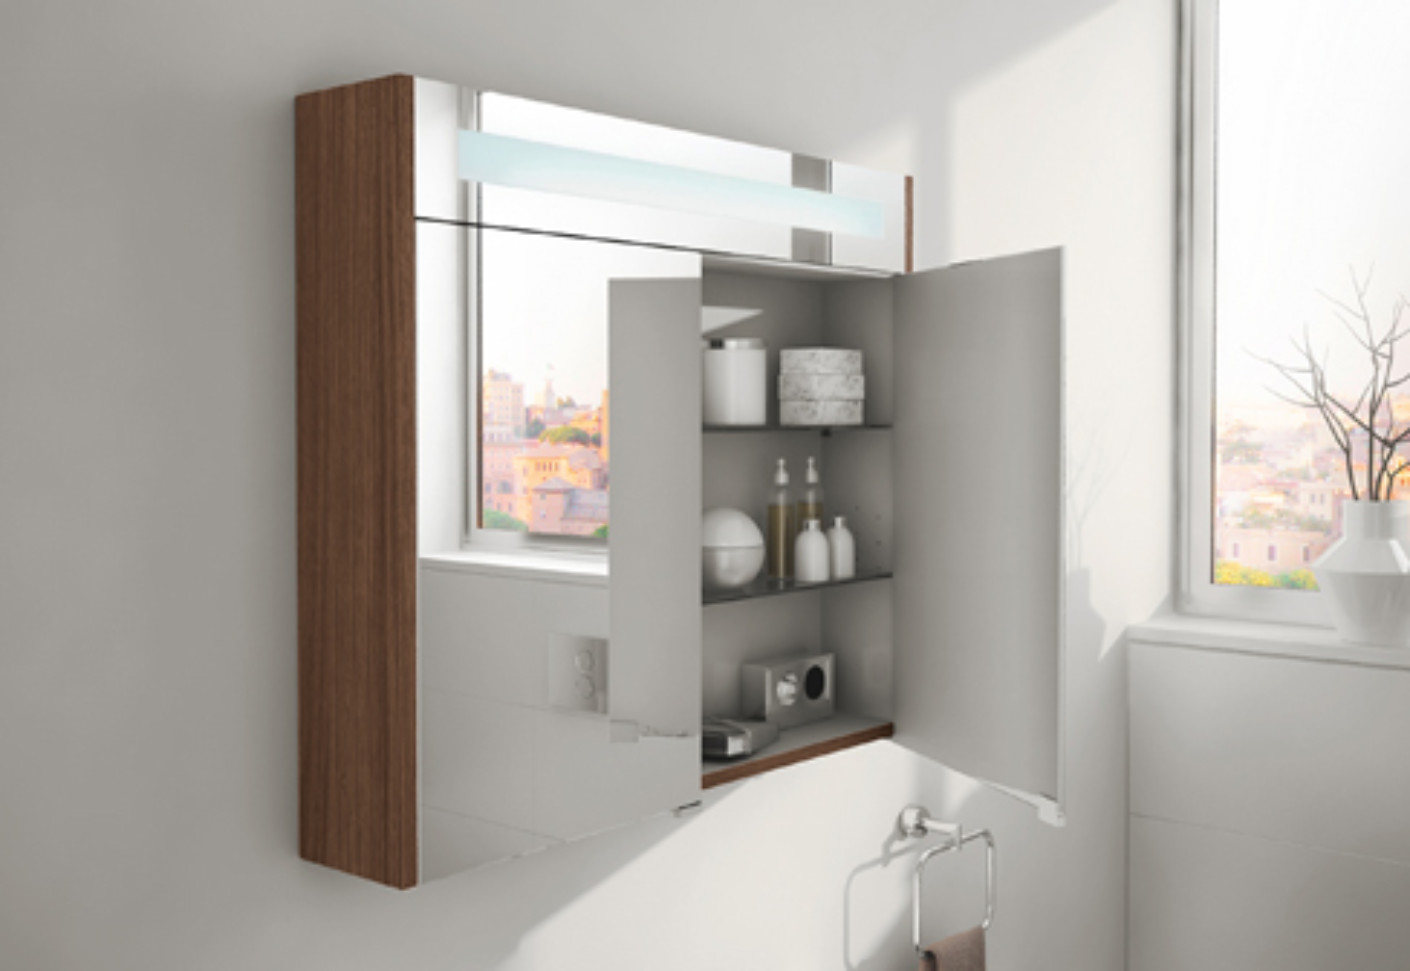 Mirrored Bathroom Cupboard S20 Mirror Cabinet By Vitra Bathroom Stylepark